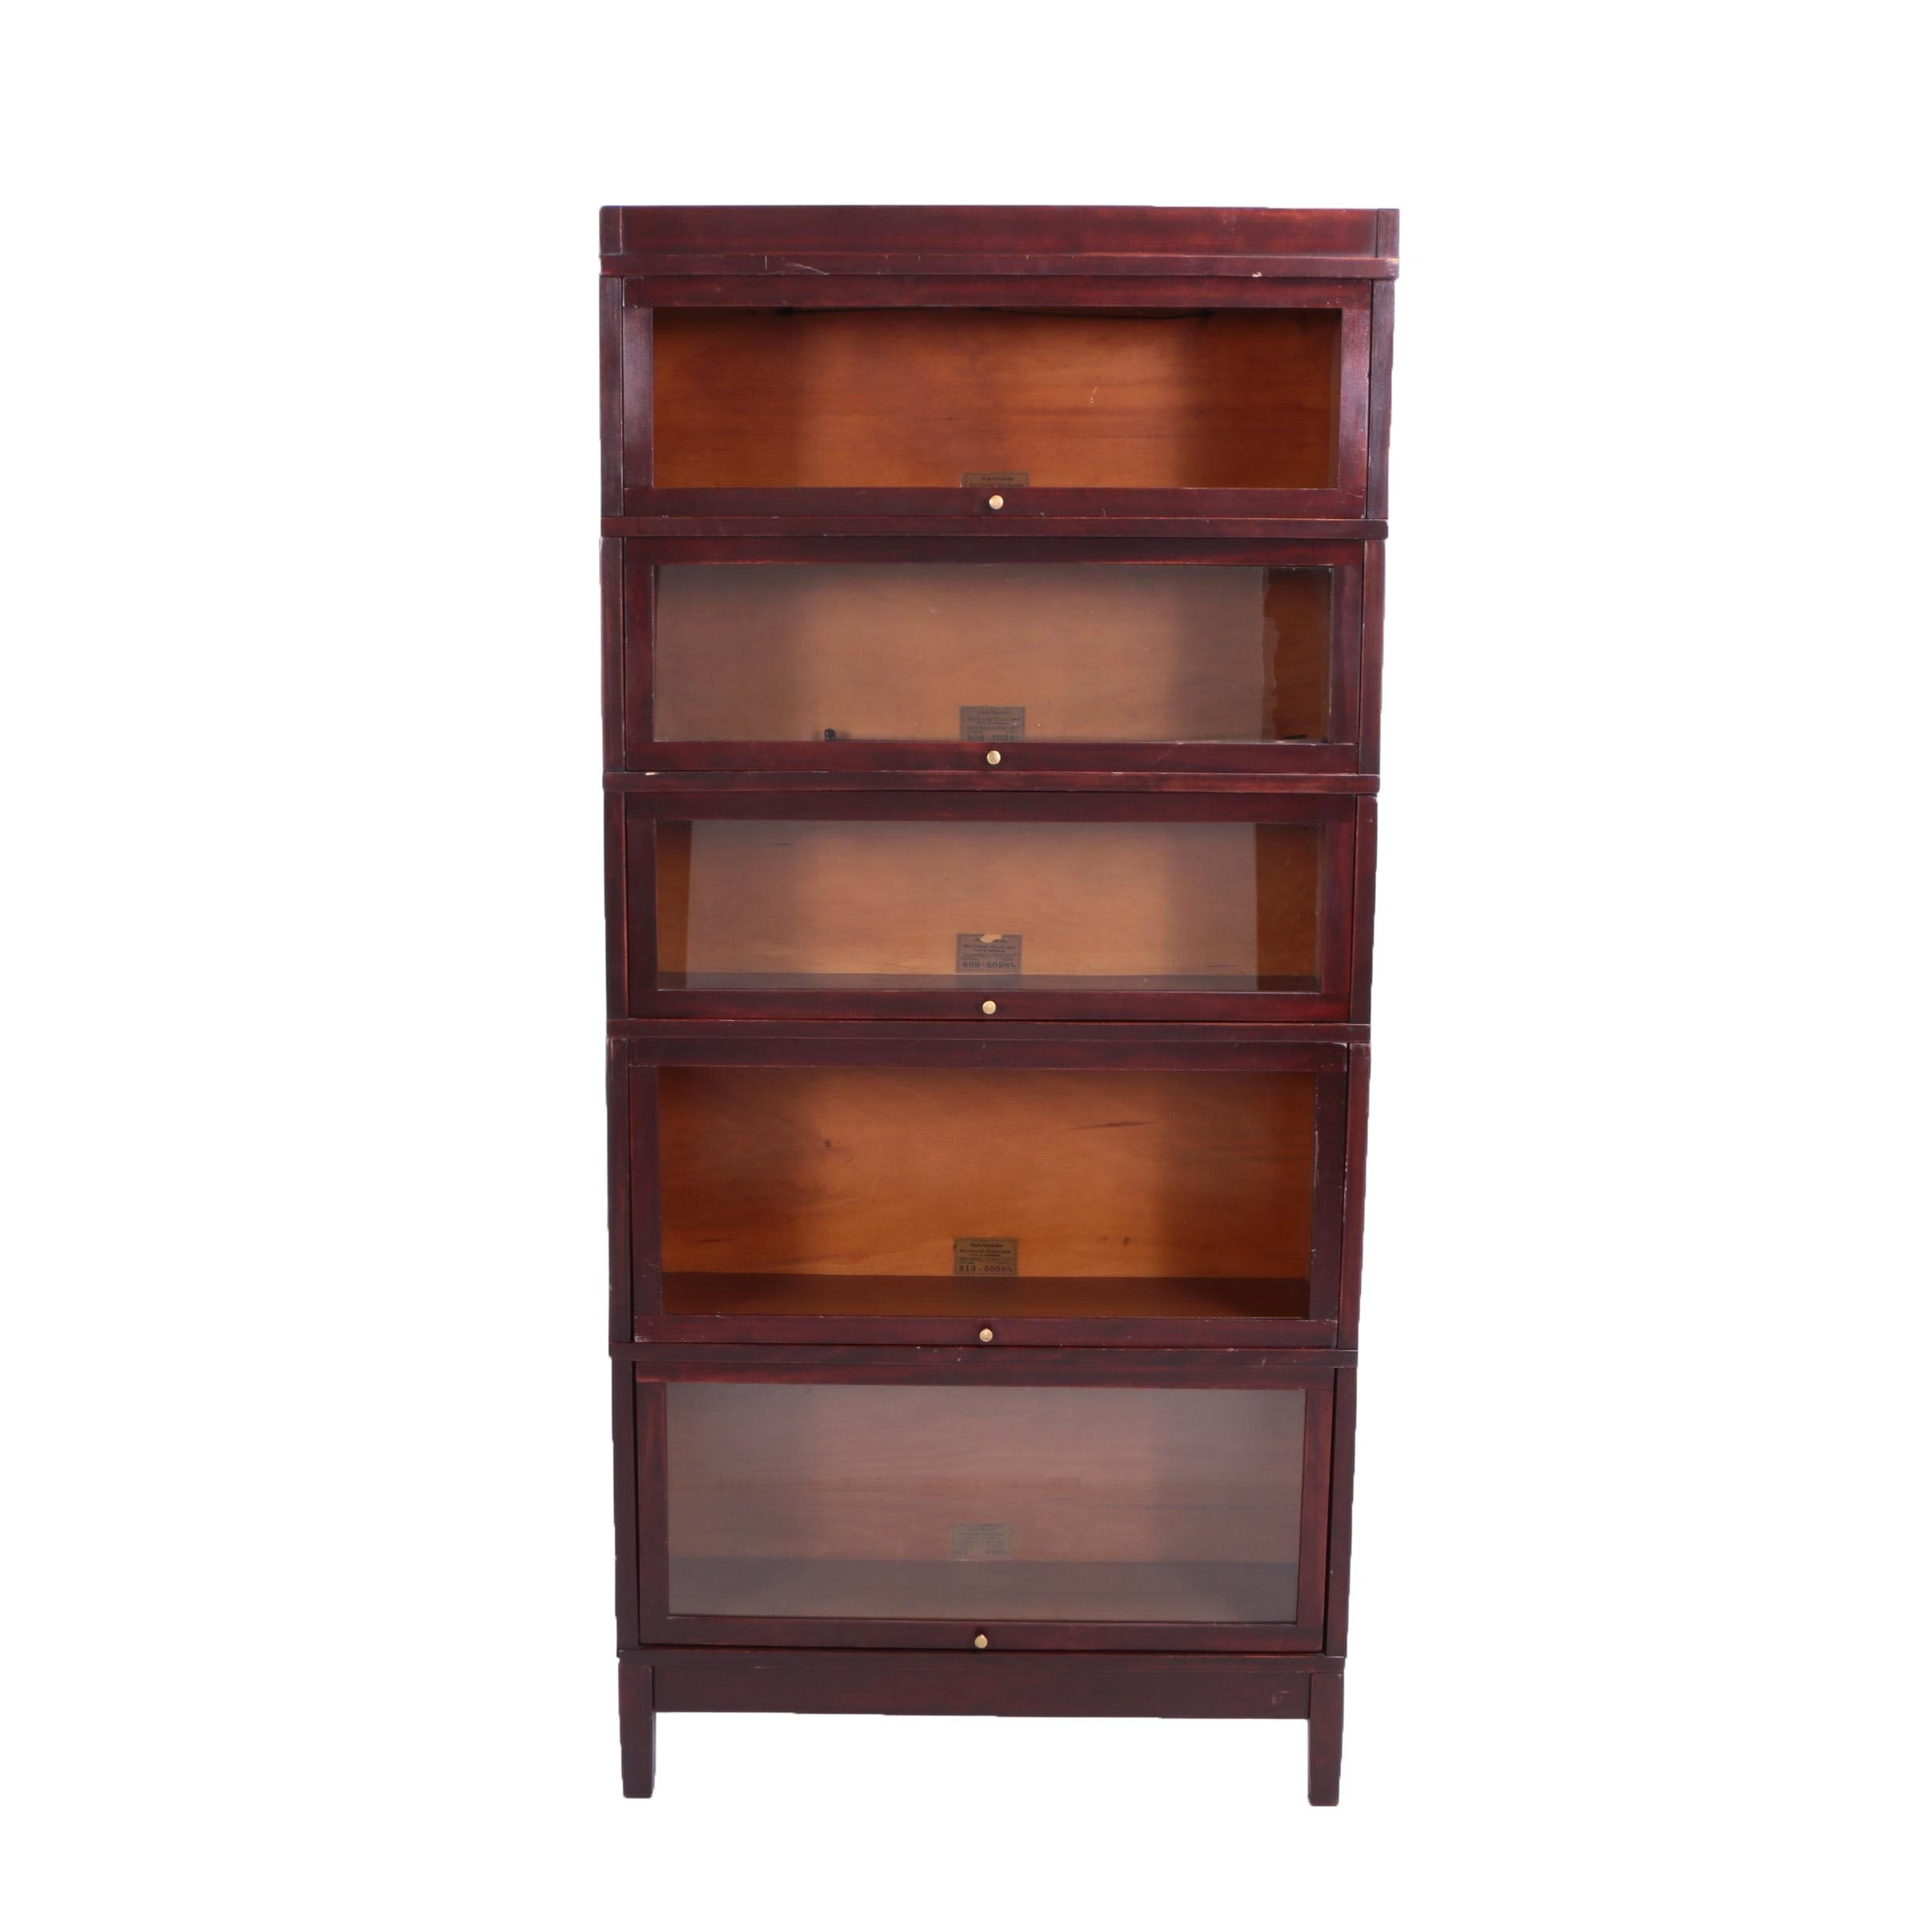 """Globe-Wernicke """"Universal"""" Sectional Barrister's Bookcase in Mahogany Finish"""